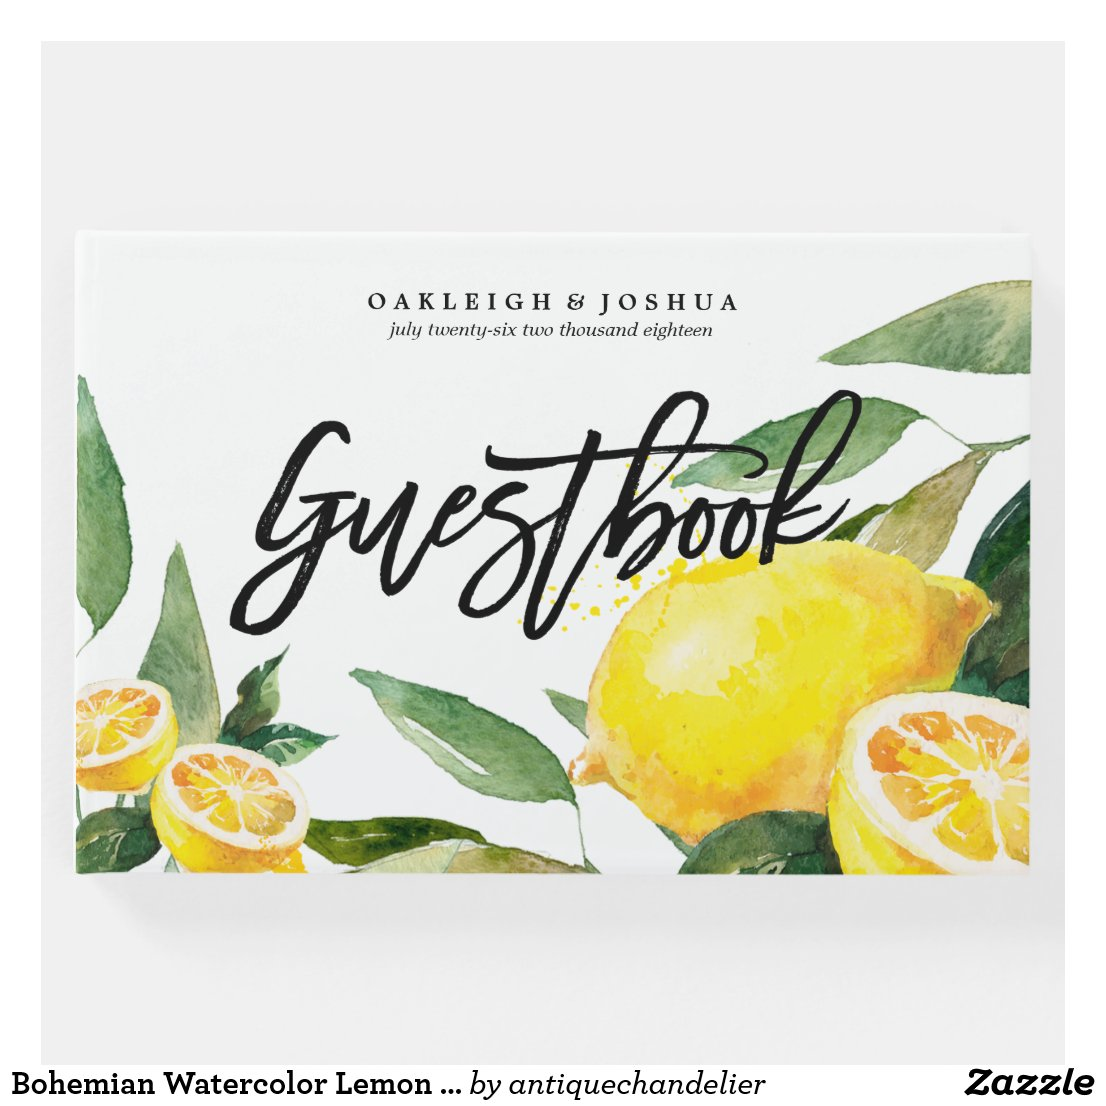 Bohemian Watercolor Lemon Wedding Guest Book